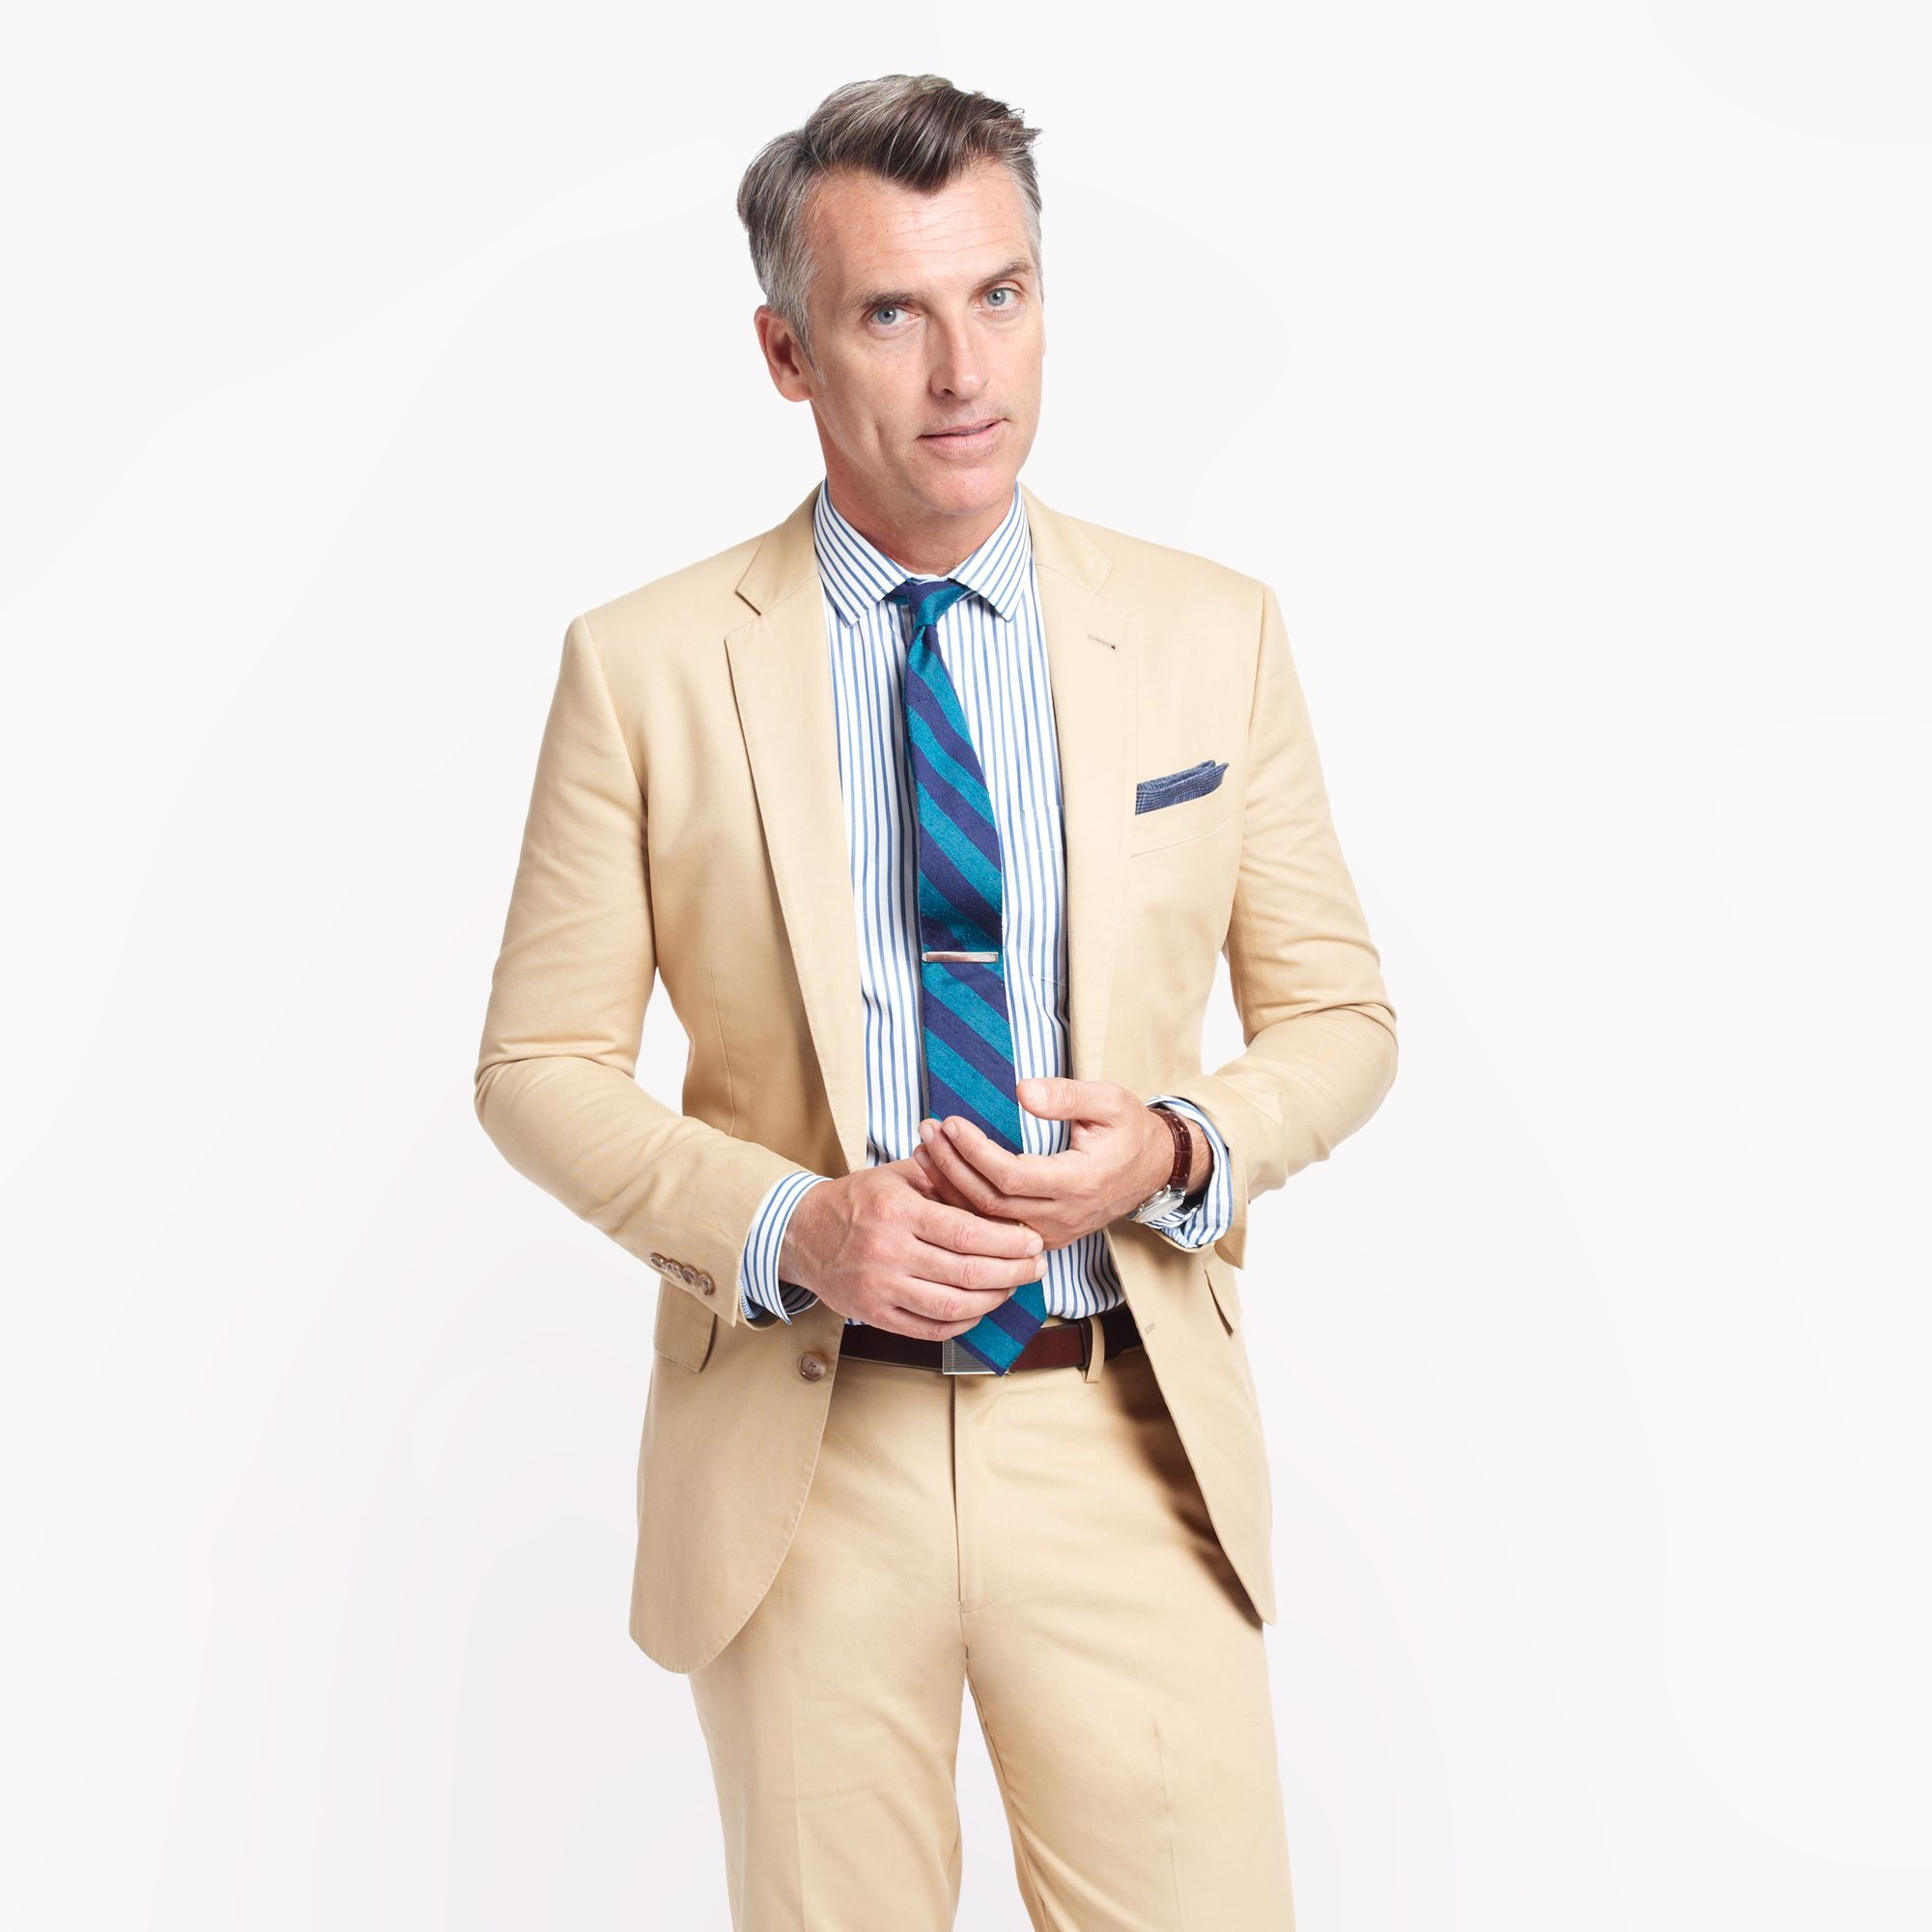 Lightweight and crisp as can be, our chino suiting will keep you stylish without breaking a sweat. Great suits begin with exceptional fabric, and this suit is no exception; it's crafted from the finest % Italian cotton that's soft yet durable. Hand-tailored in our signature slim fit, we construct the suit with a half-canvassed structure for durability and fit that conforms to your.